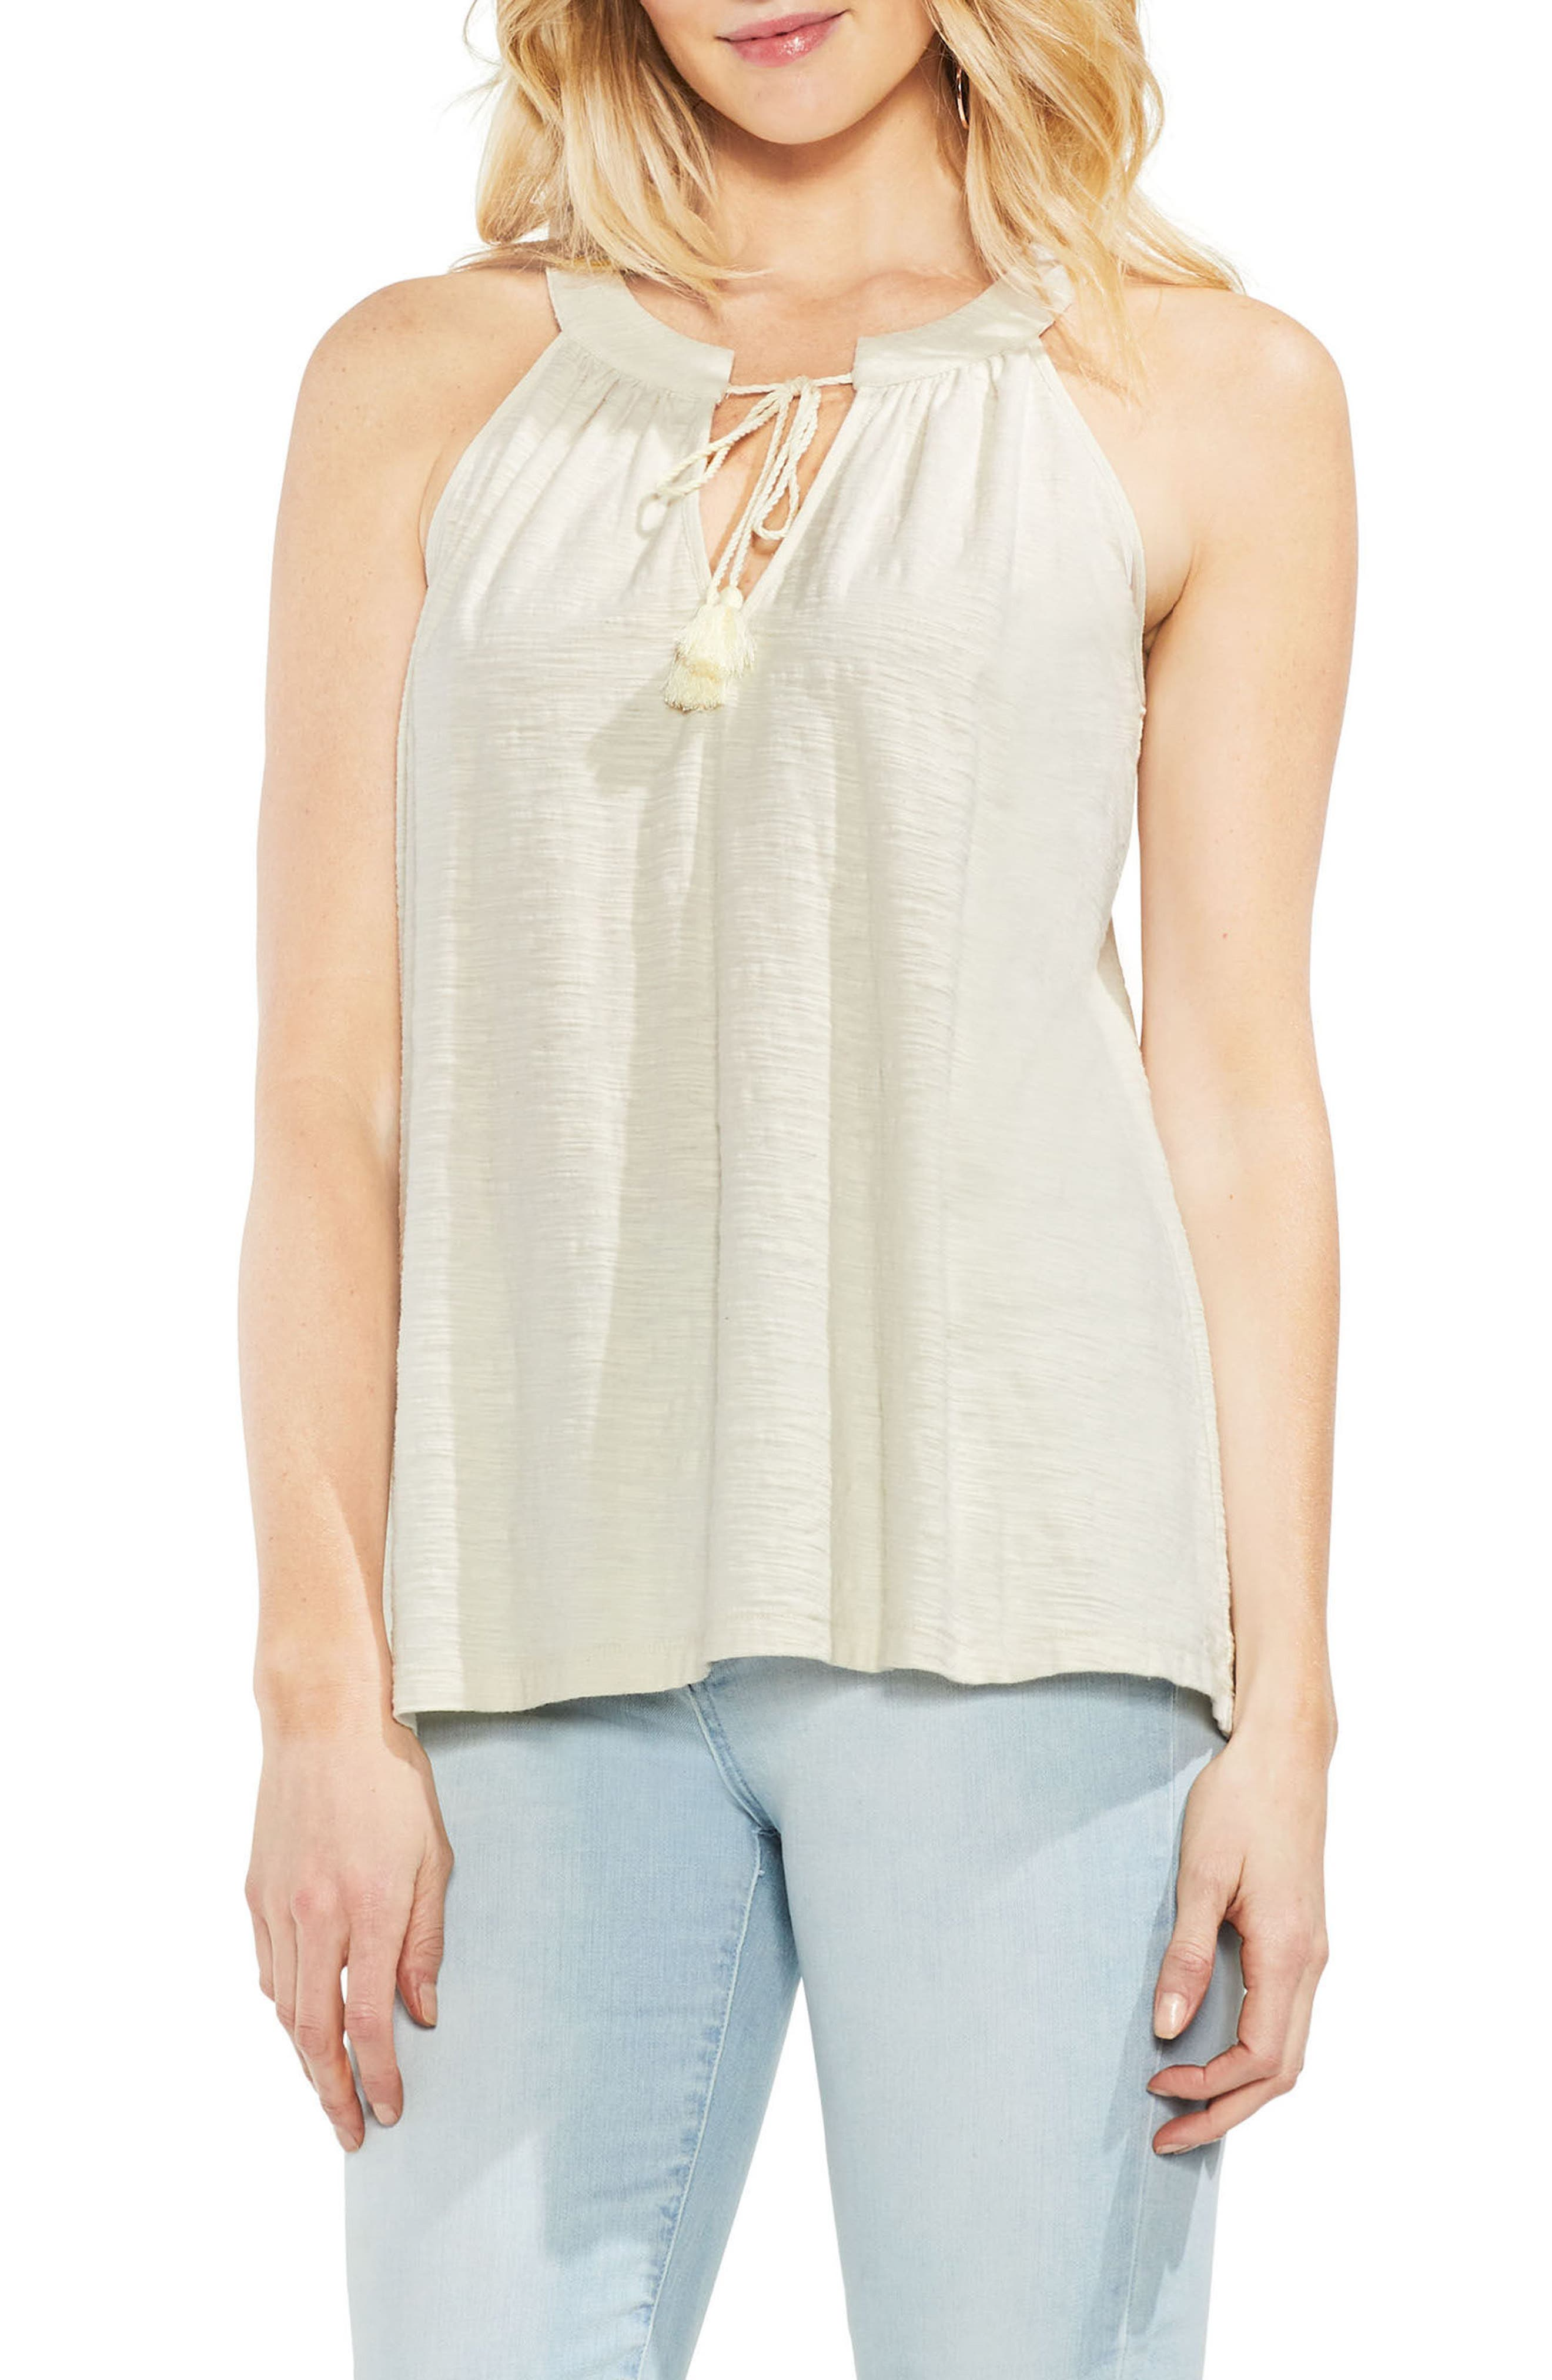 Main Image - Vince Camuto Keyhole Neck Tank Top